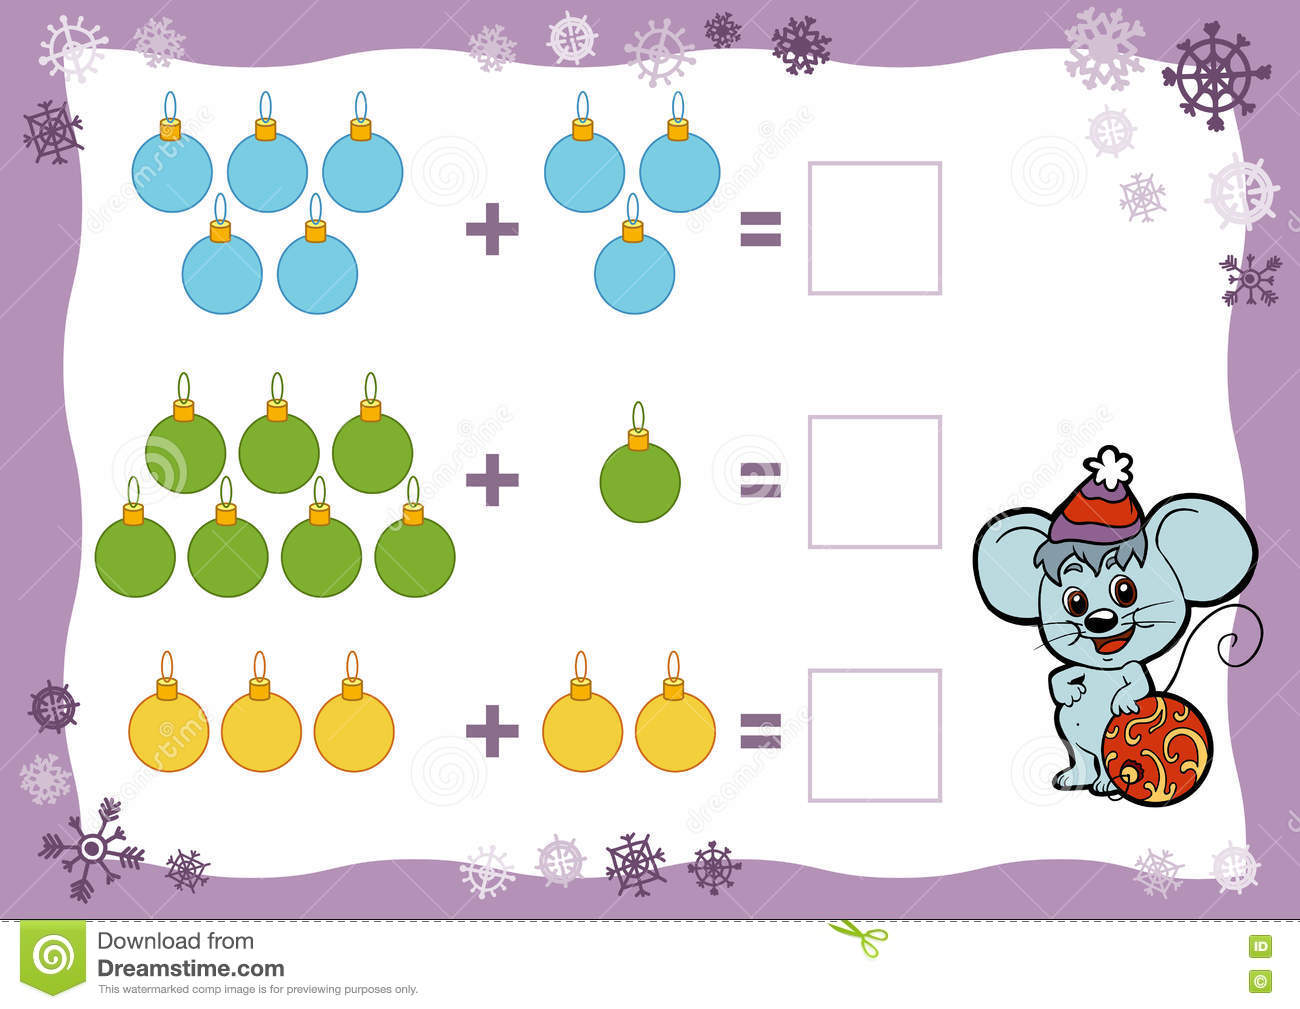 Counting Game For Children Addition Worksheets Christmas Toys – Christmas Addition Worksheet